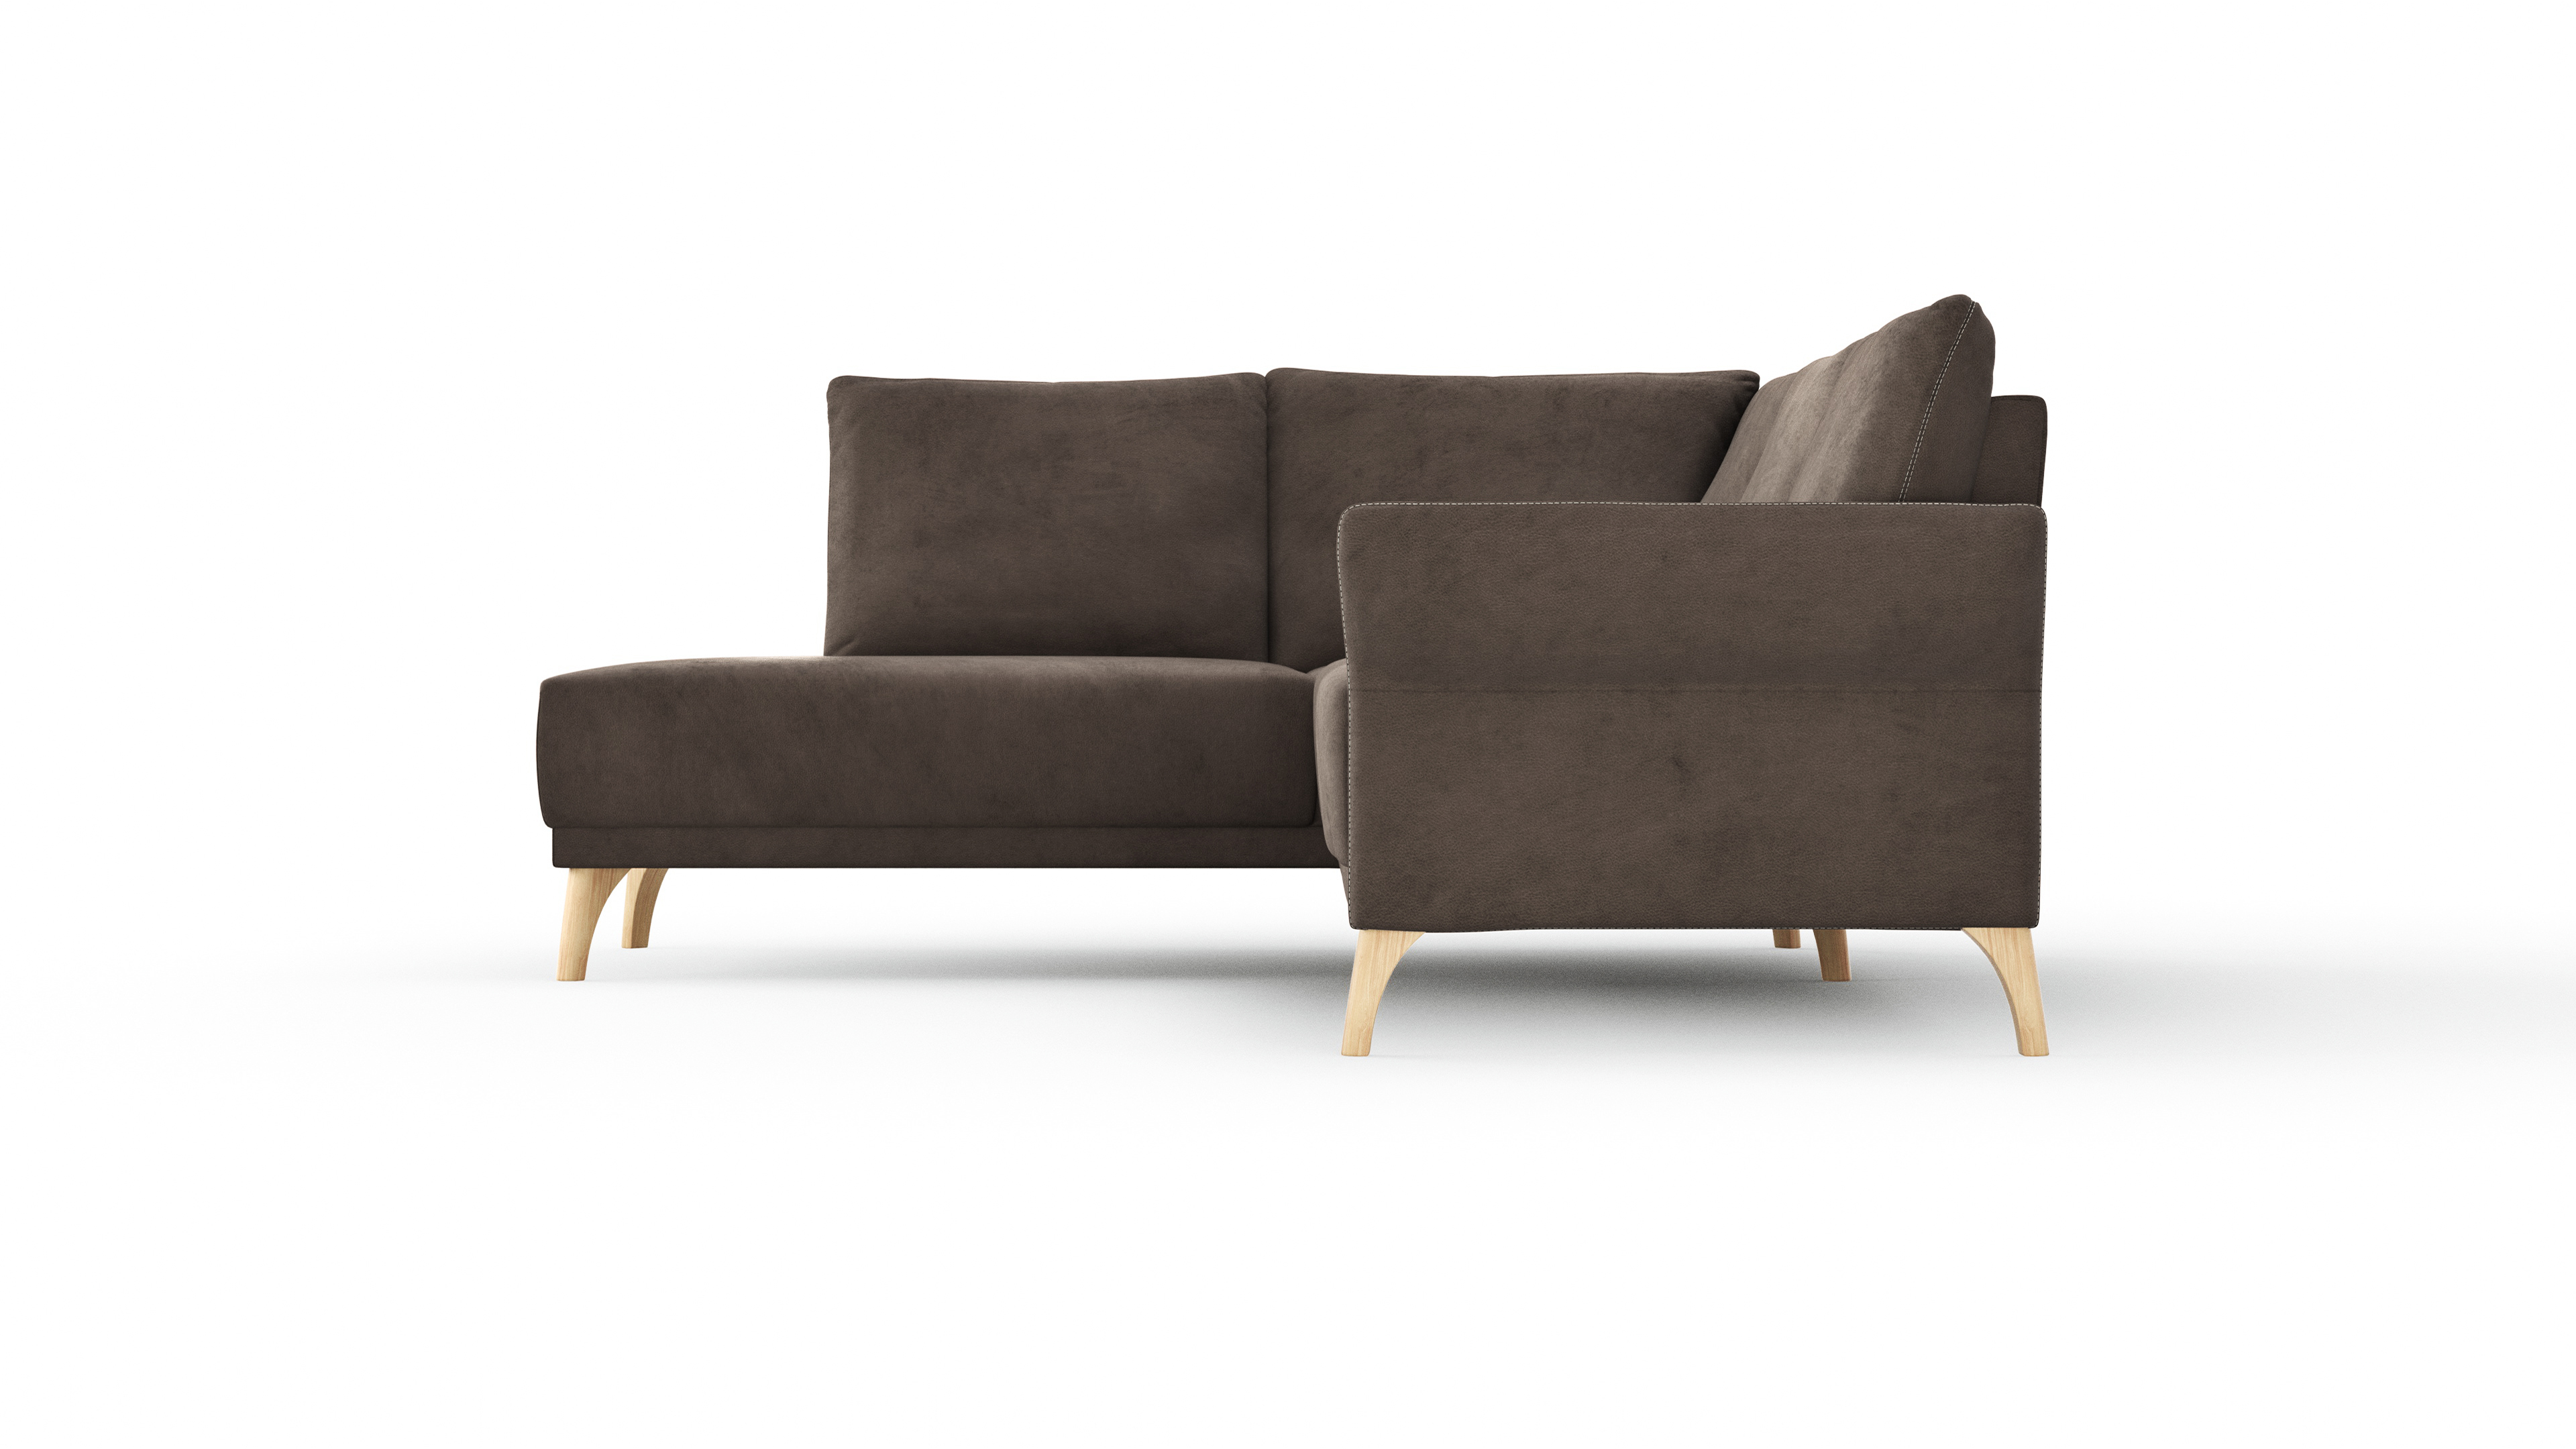 Global Comfort Ecksofa Rosario freisteller 2 102533 | Homepoet